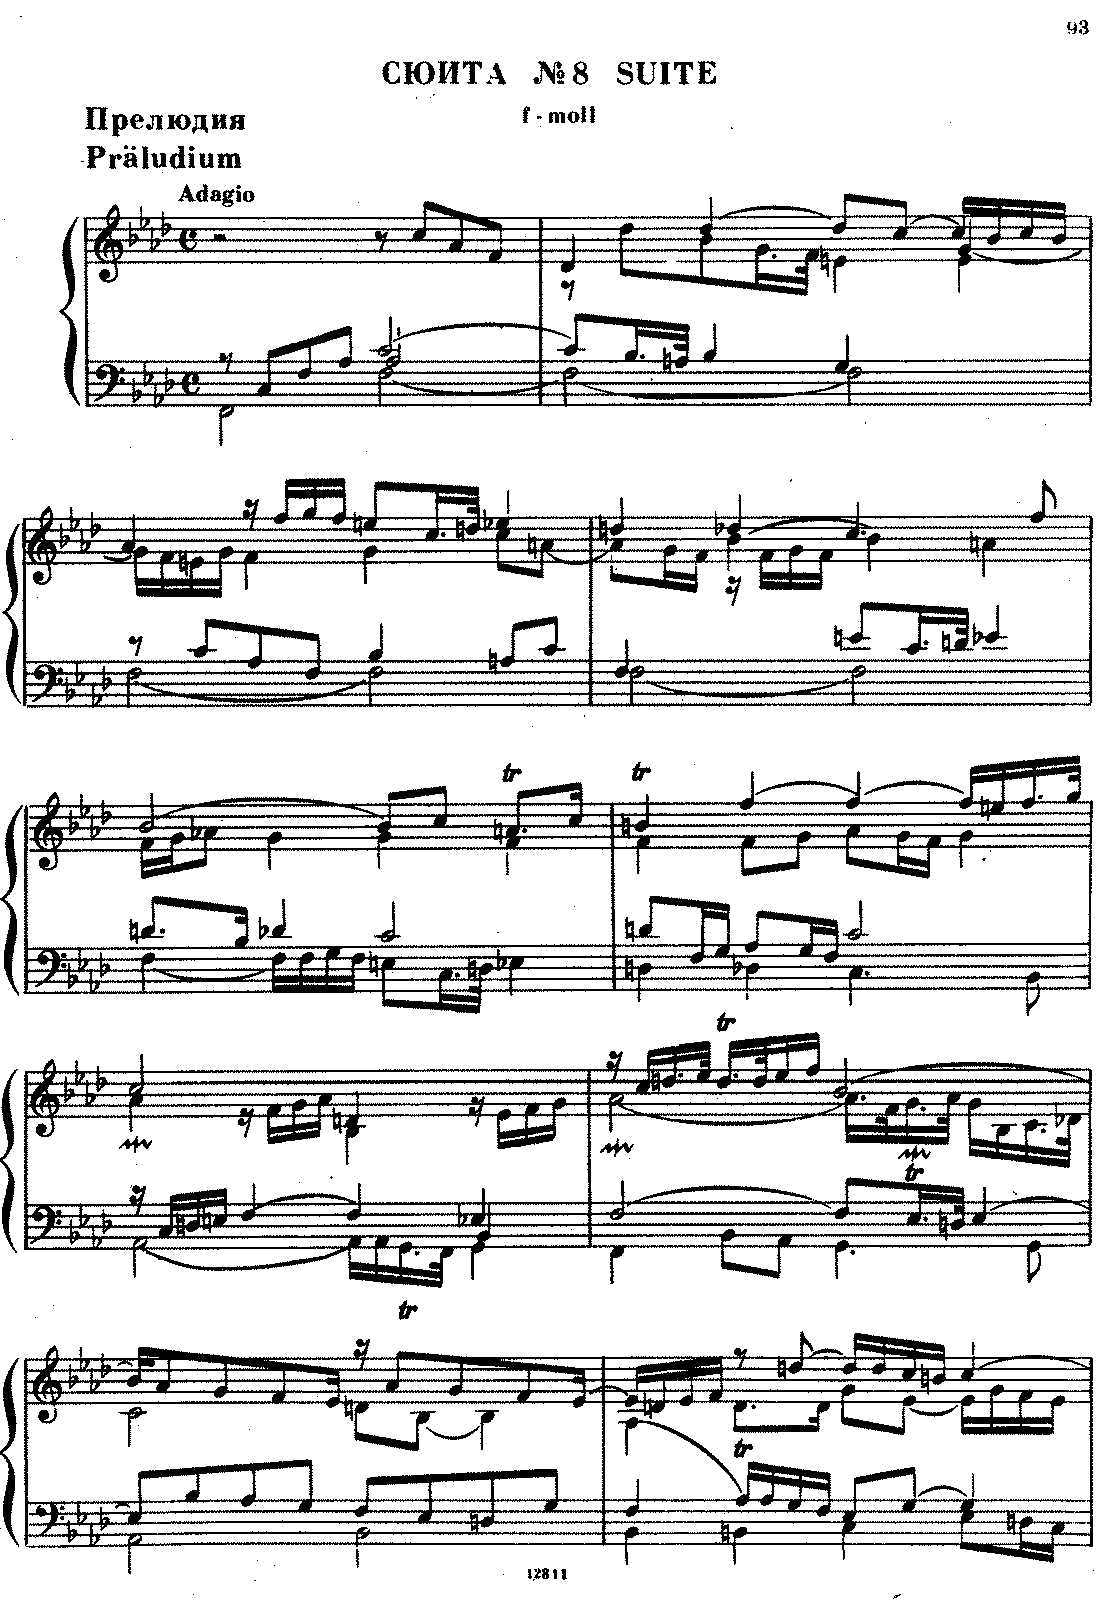 Handel - Suite No 8 in F minor.pdf